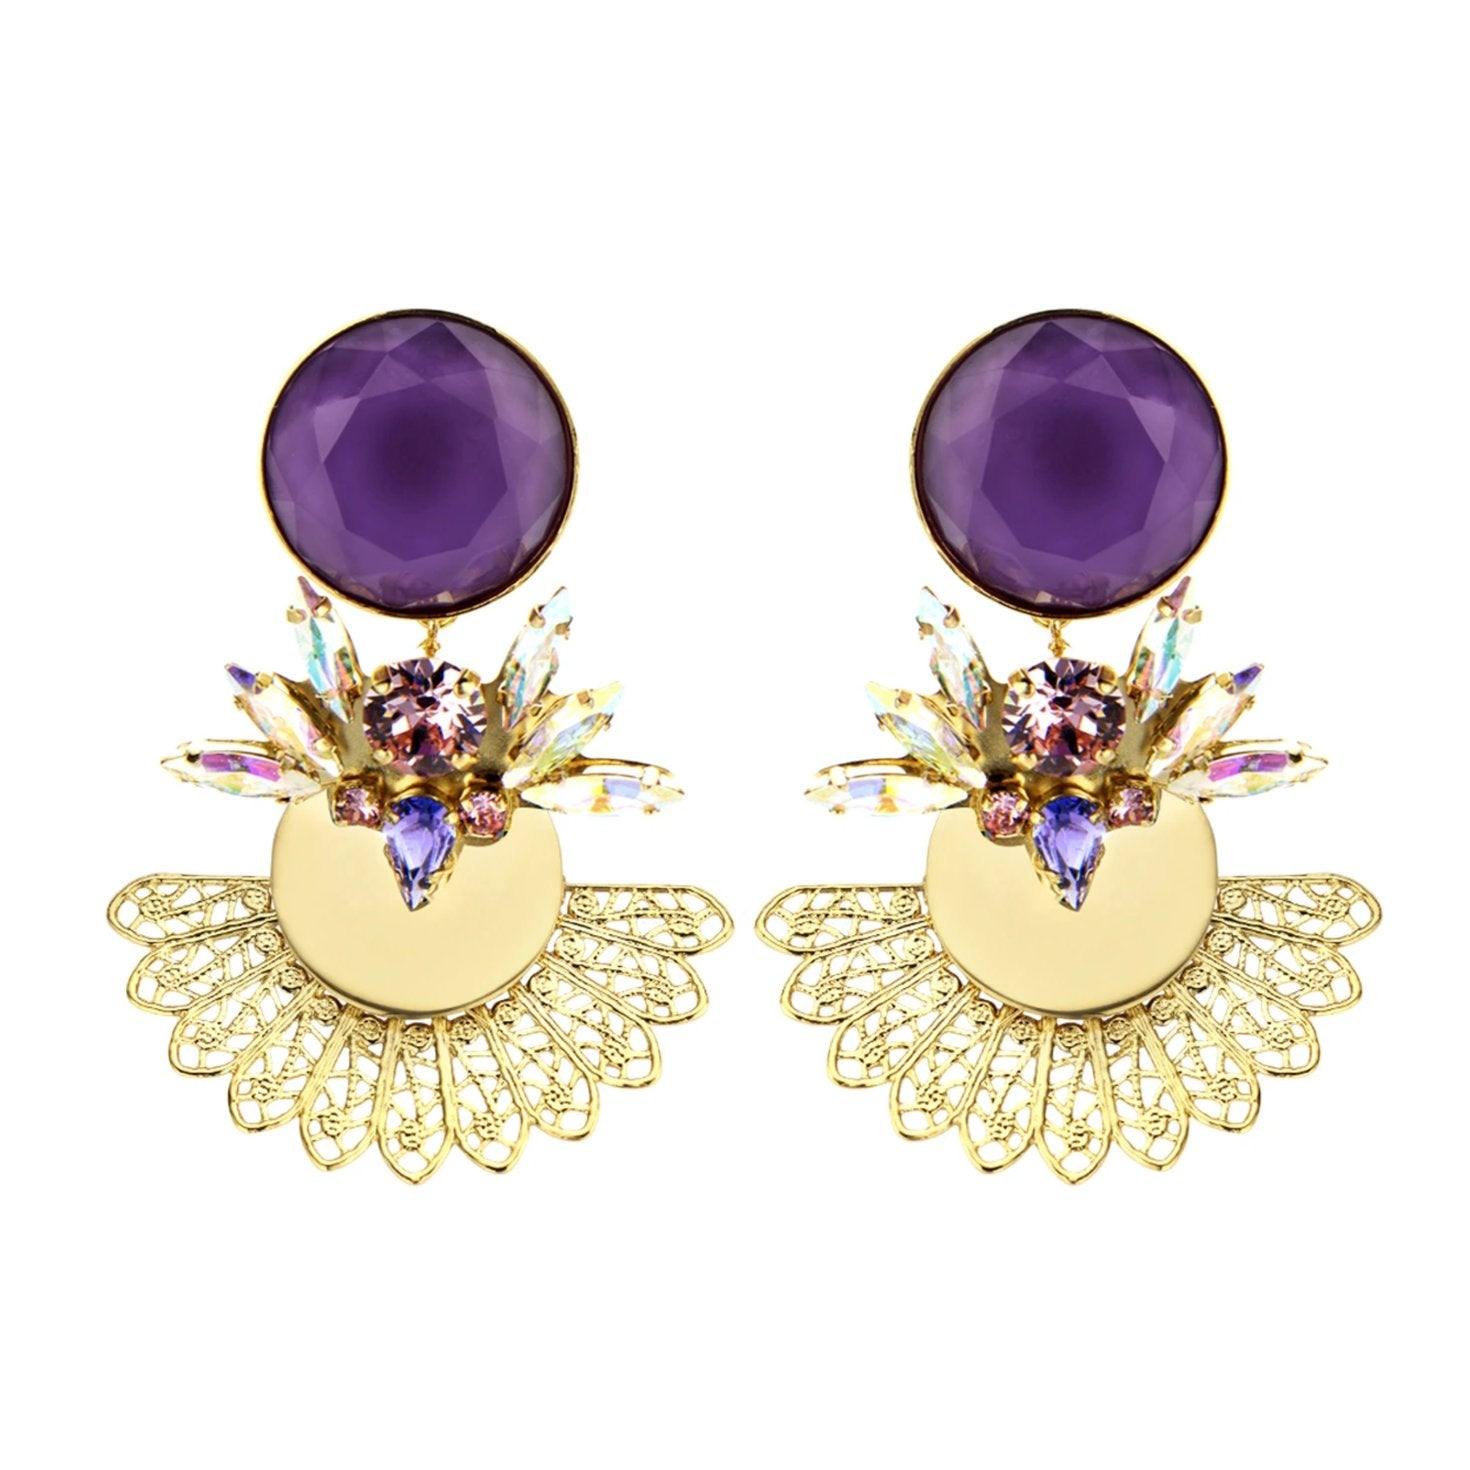 Roberta purple  earrings - Souvenirs de Pomme